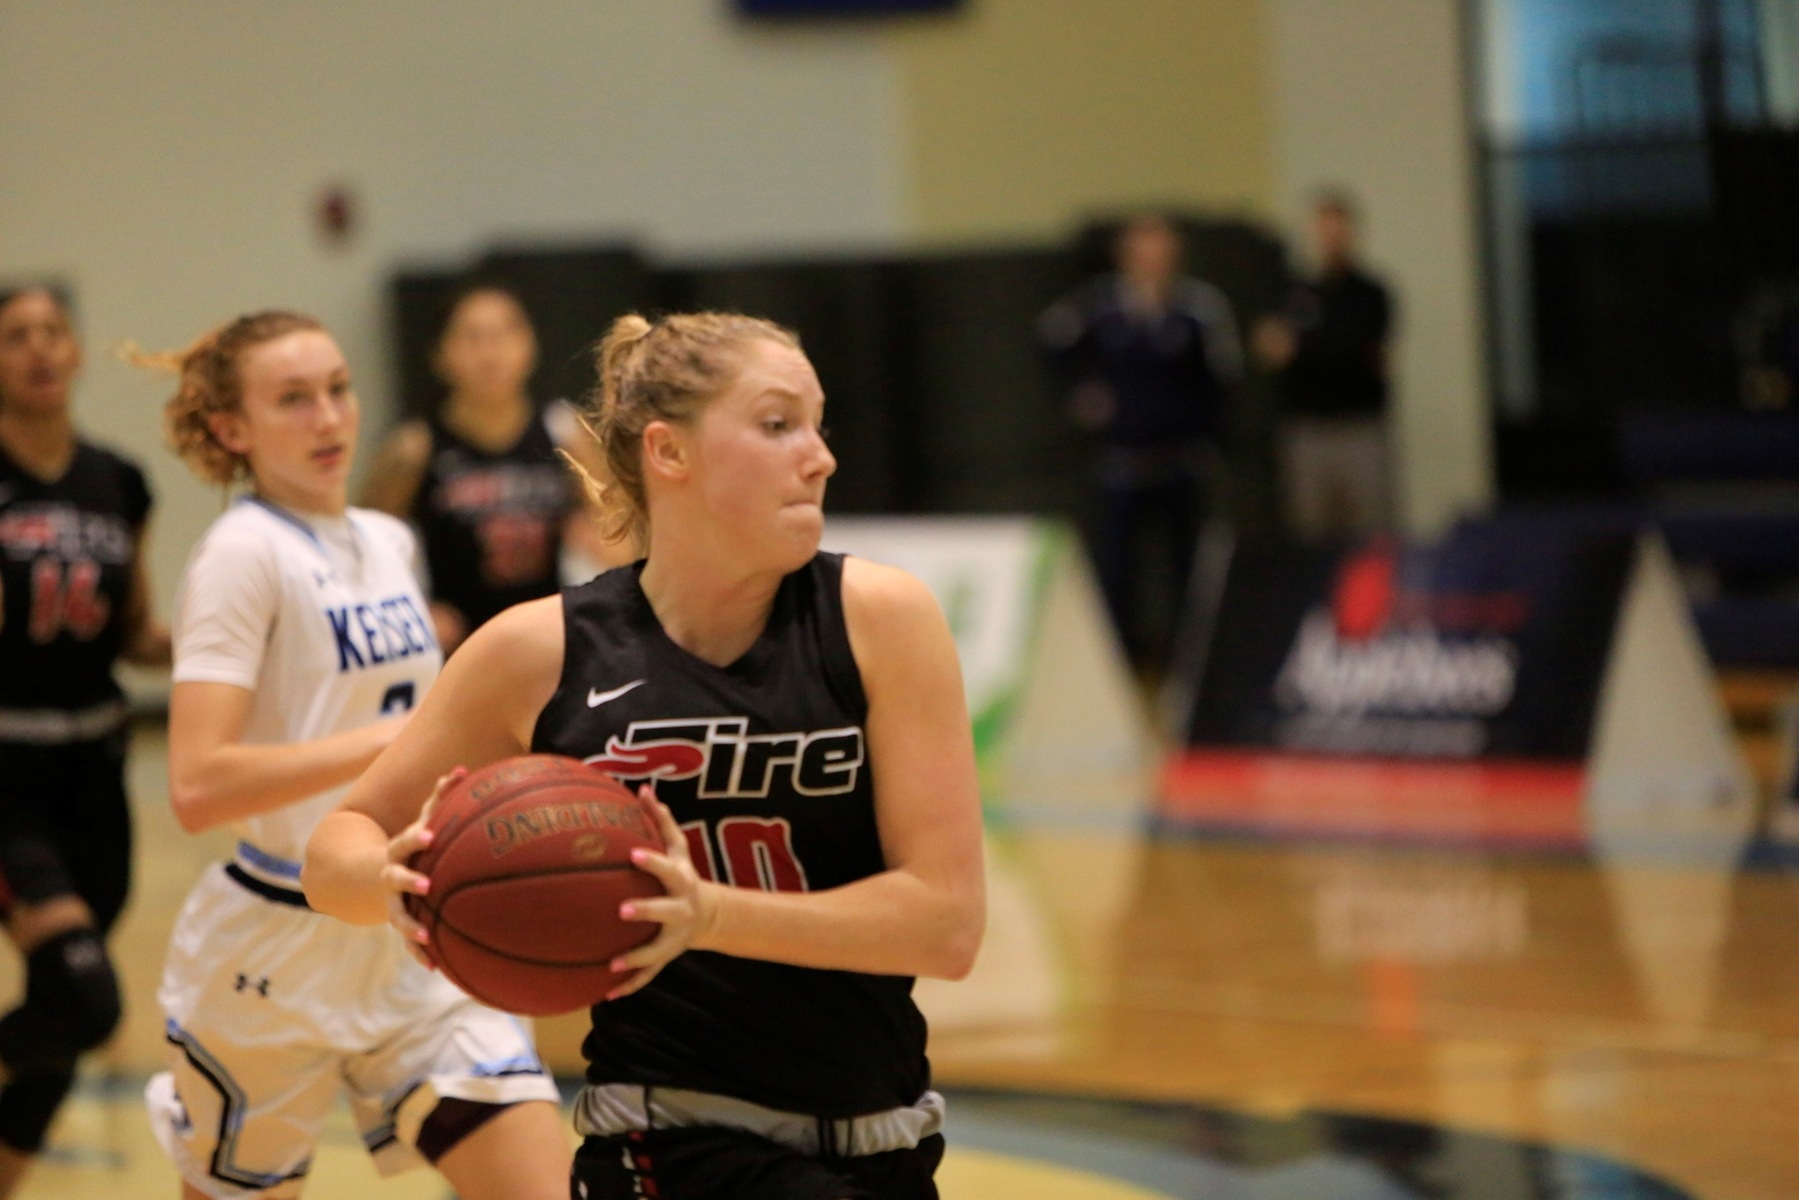 NAIA Division II Women's Basketball National Player of the Week - No. 10